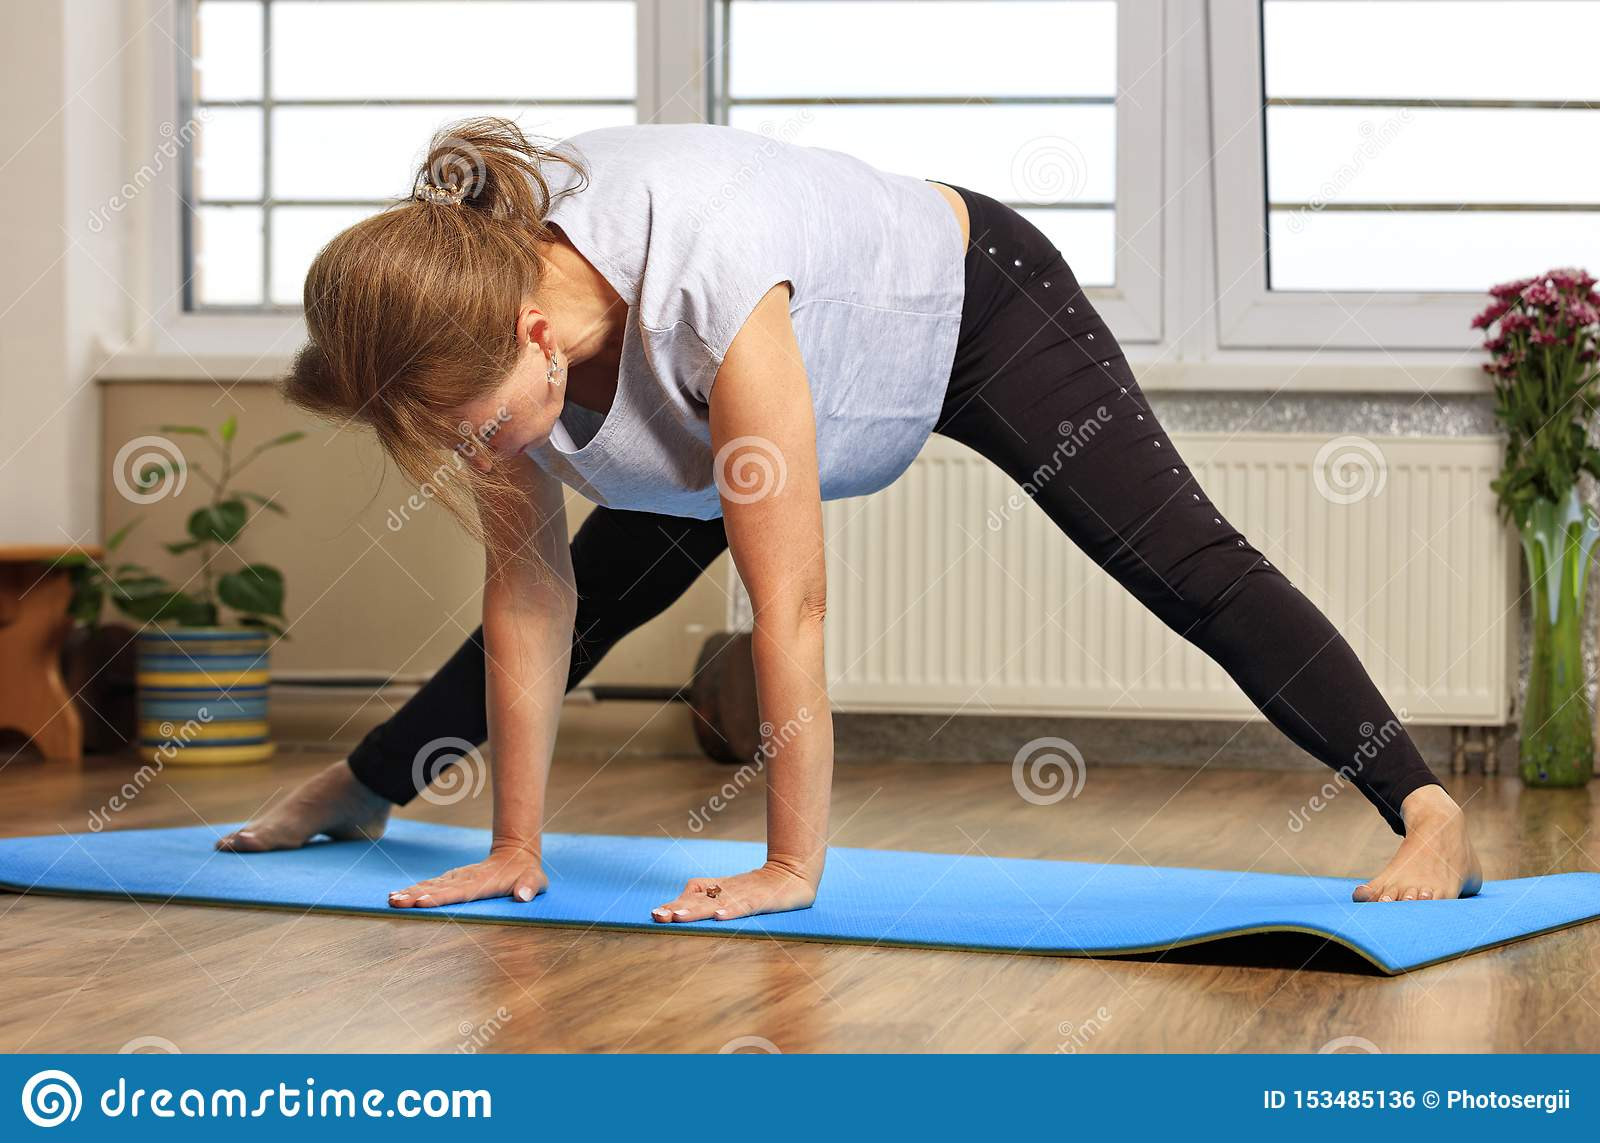 Middle aged or mature woman doing yoga indoors